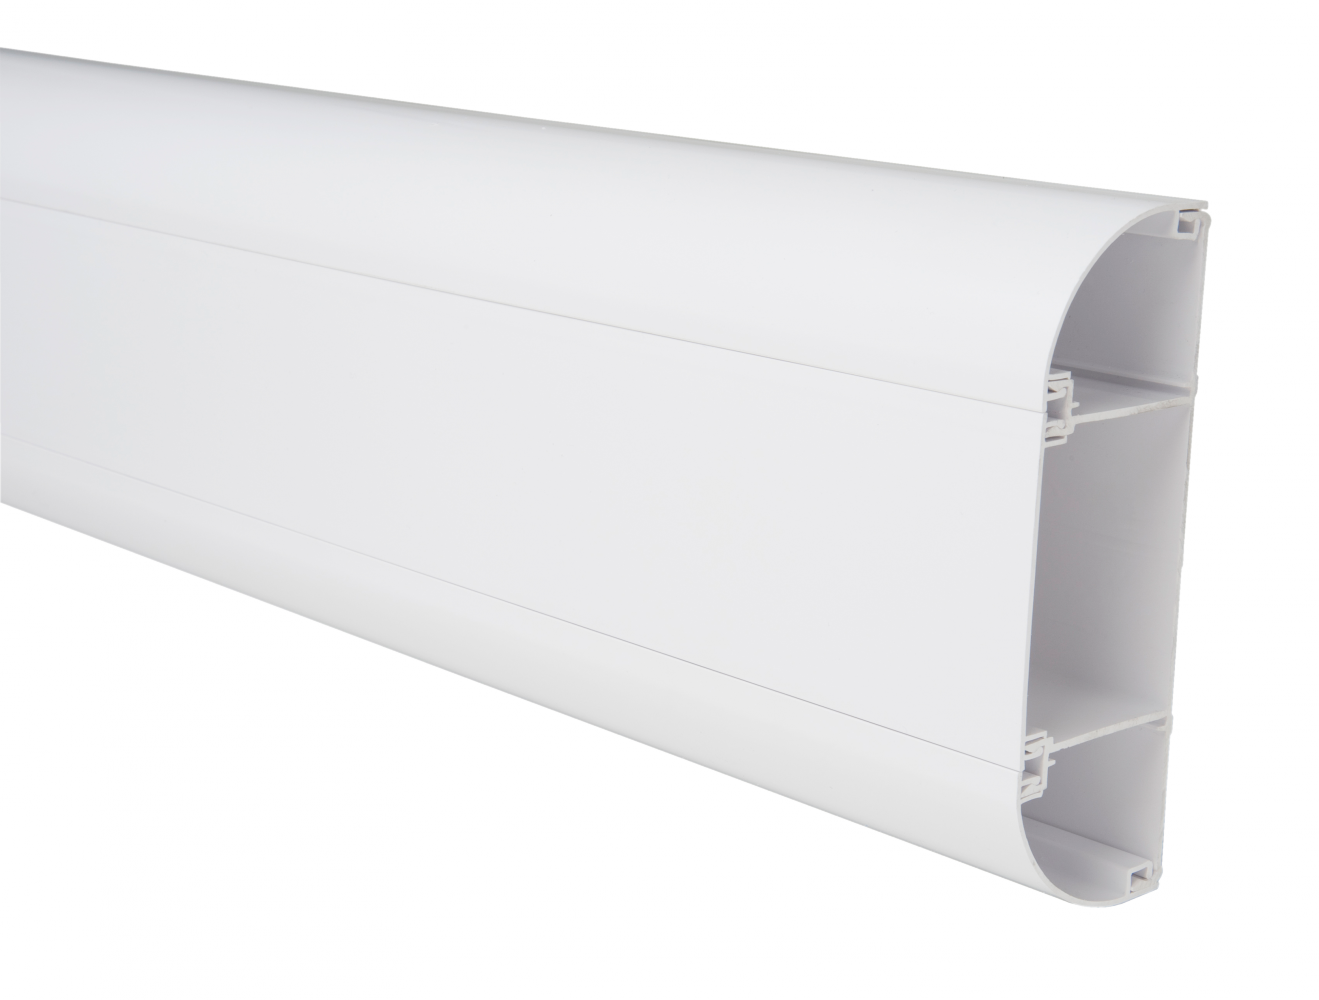 Elite 3 Dado Trunking